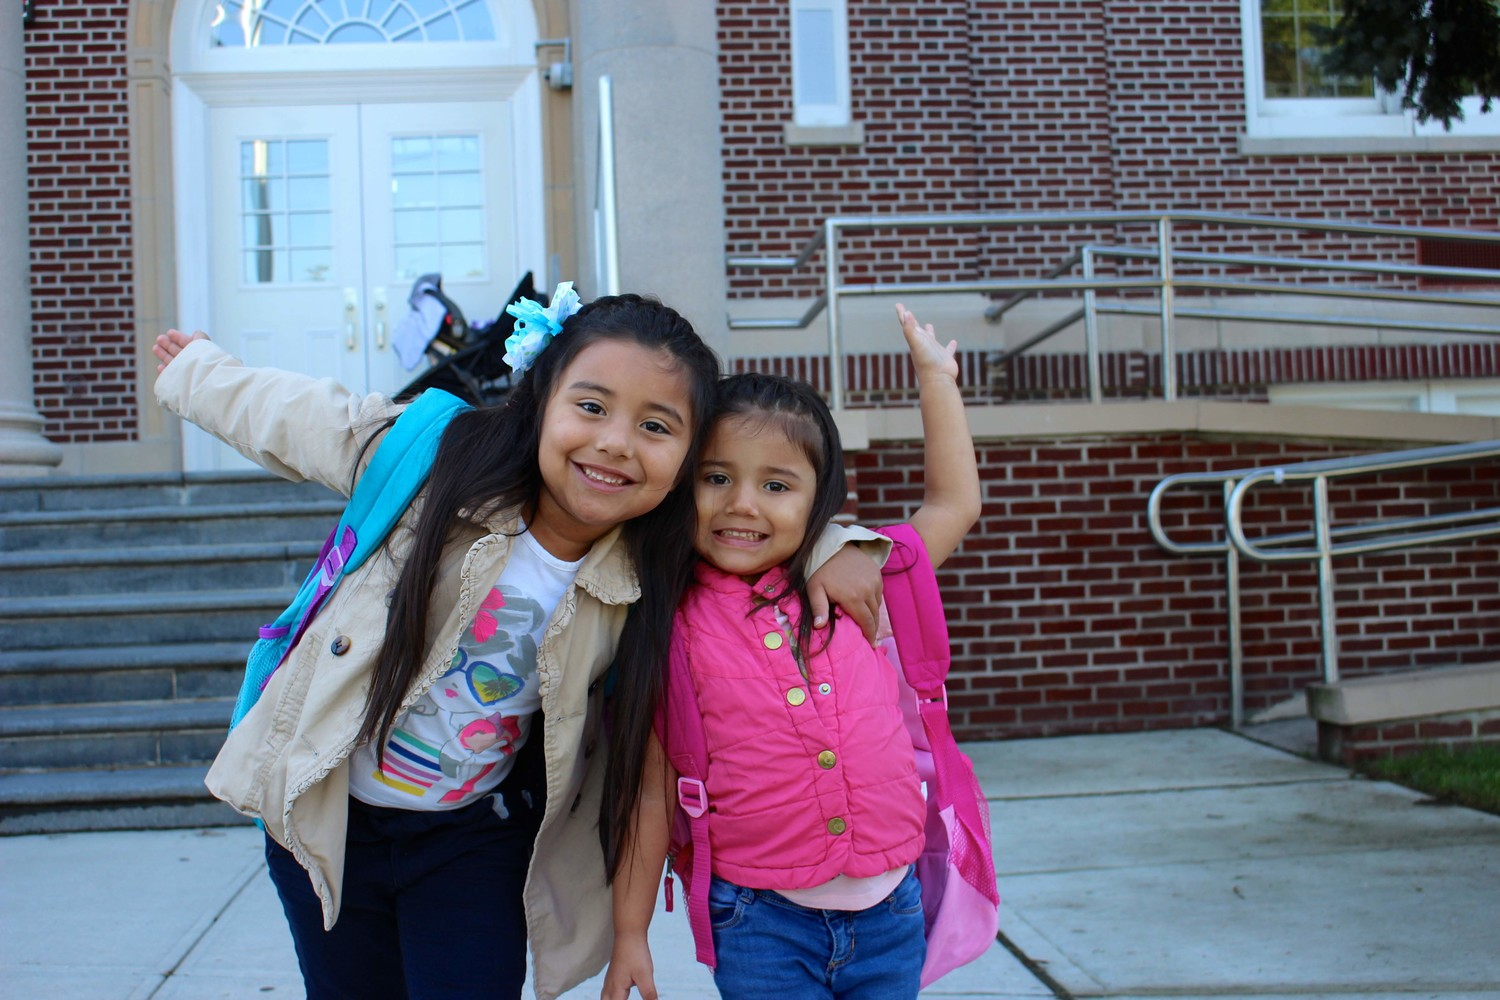 Emily Buitrago (left) and her sister Loren Sophia Buitrago expressed their excitement for their upcoming school year.